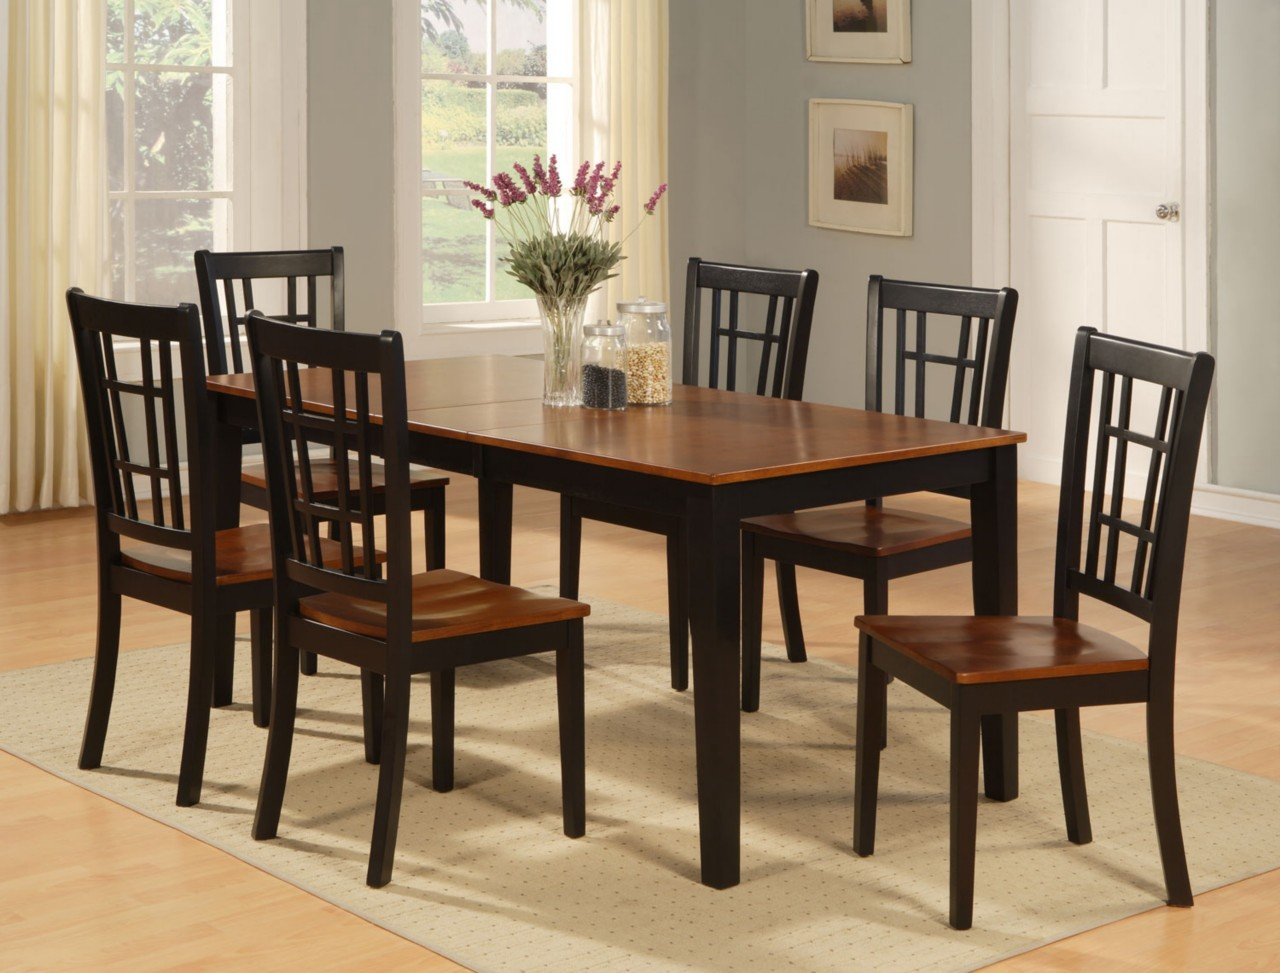 Table And Chairs Set Dinette Kitchen Dining Room Set 7pc Table And 6 Chairs Ebay